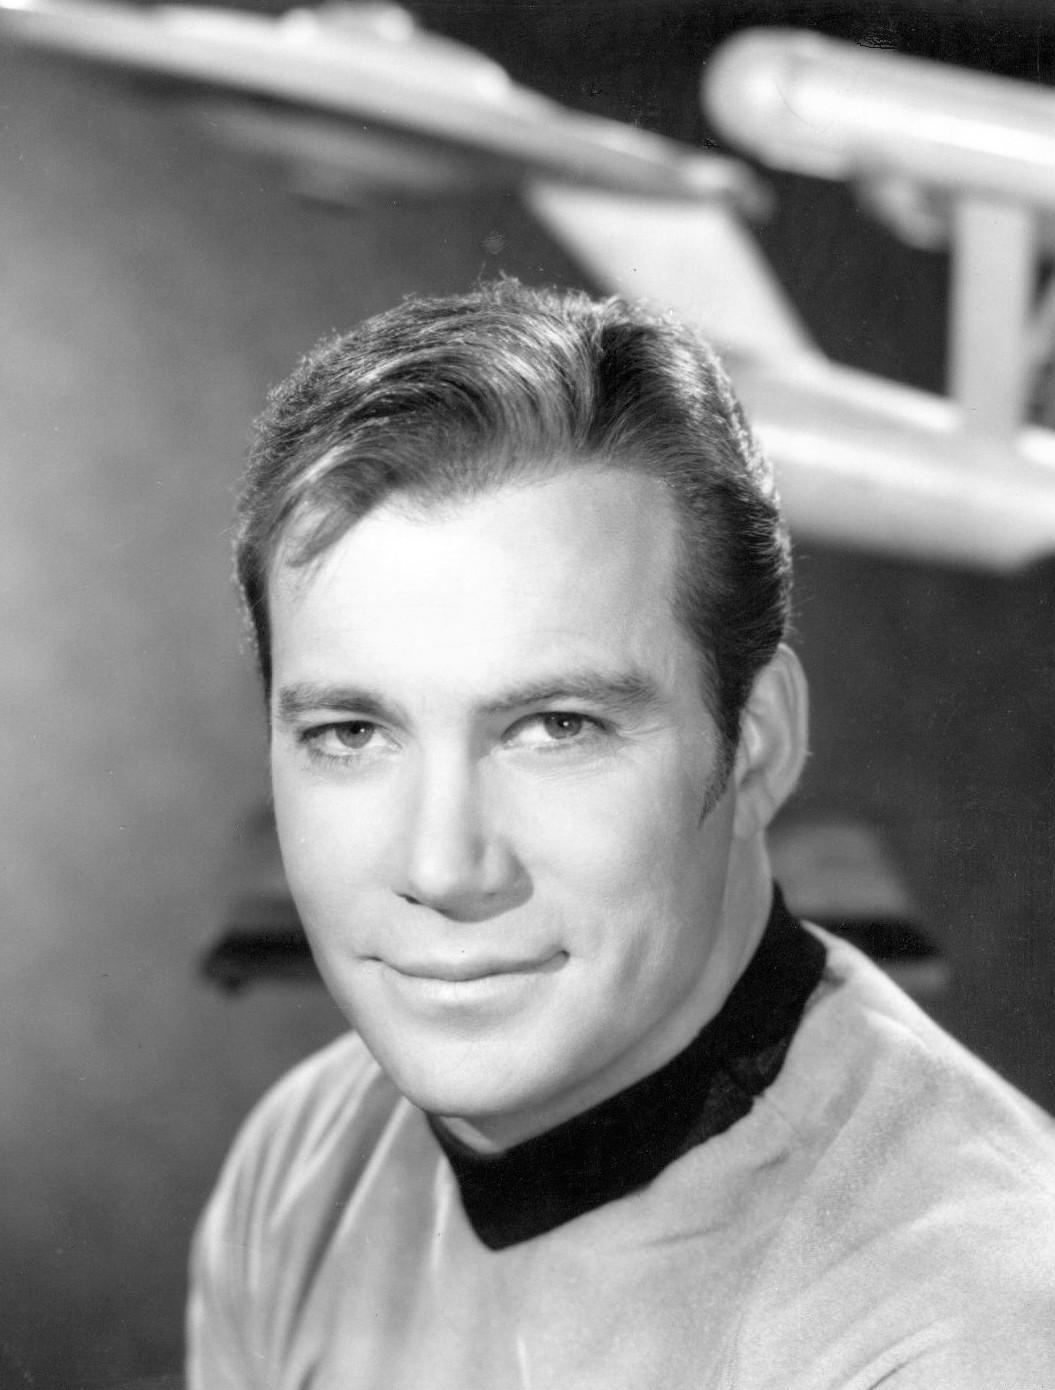 File:William Shatner Kirk Star Trek 1967.JPG - Wikimedia Commons